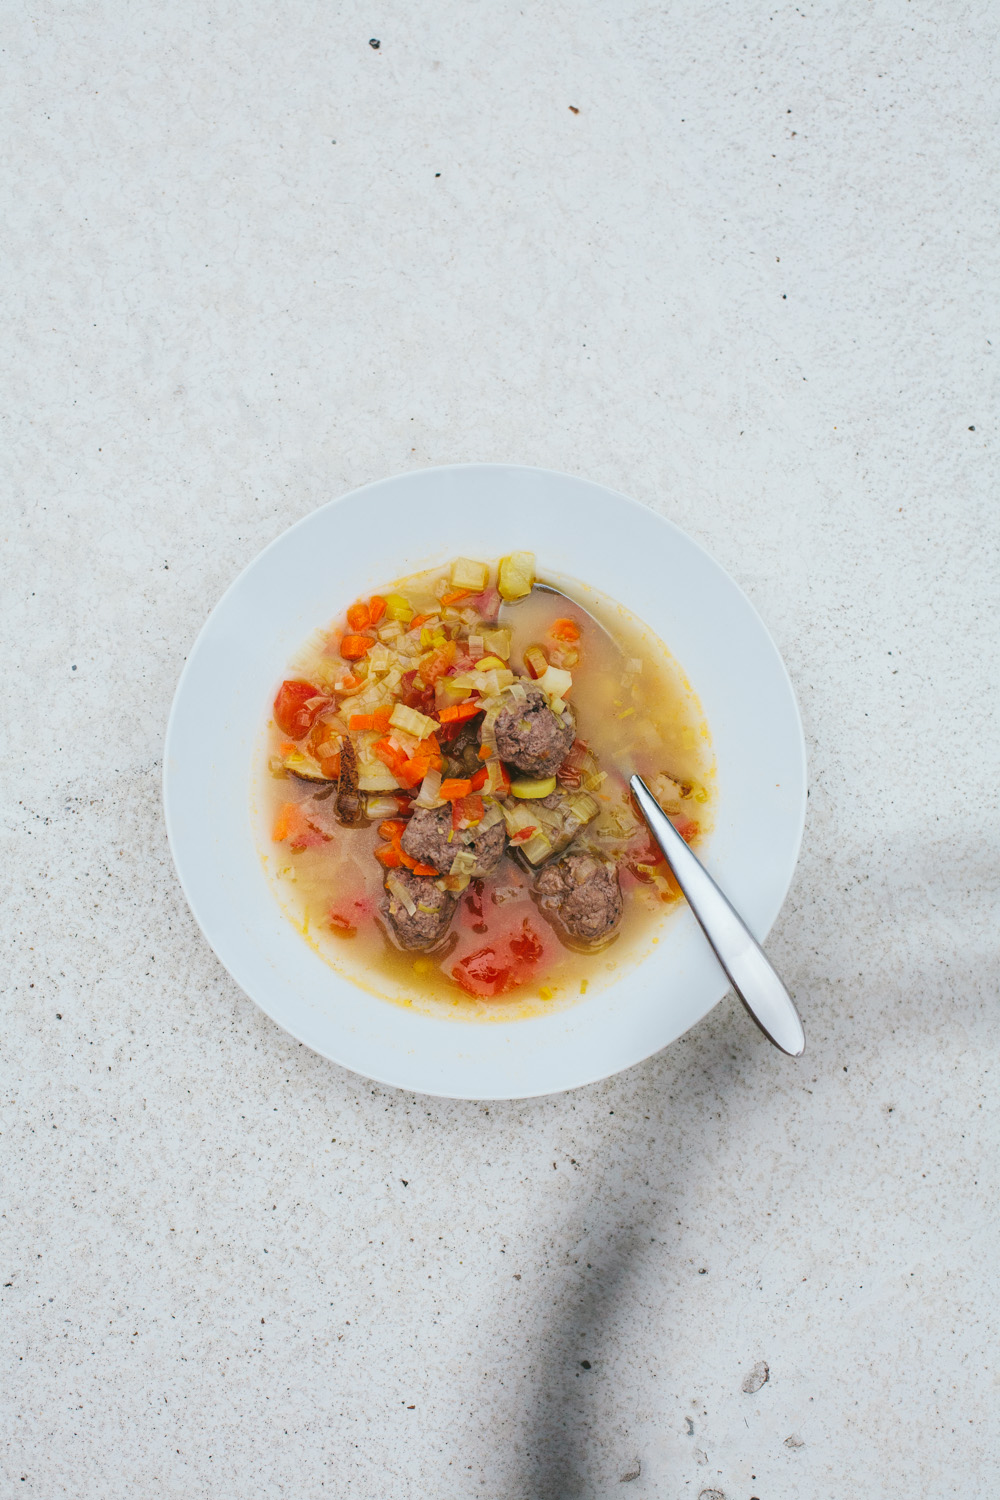 vegetable soup with mini meatballs from the Savor cookbook